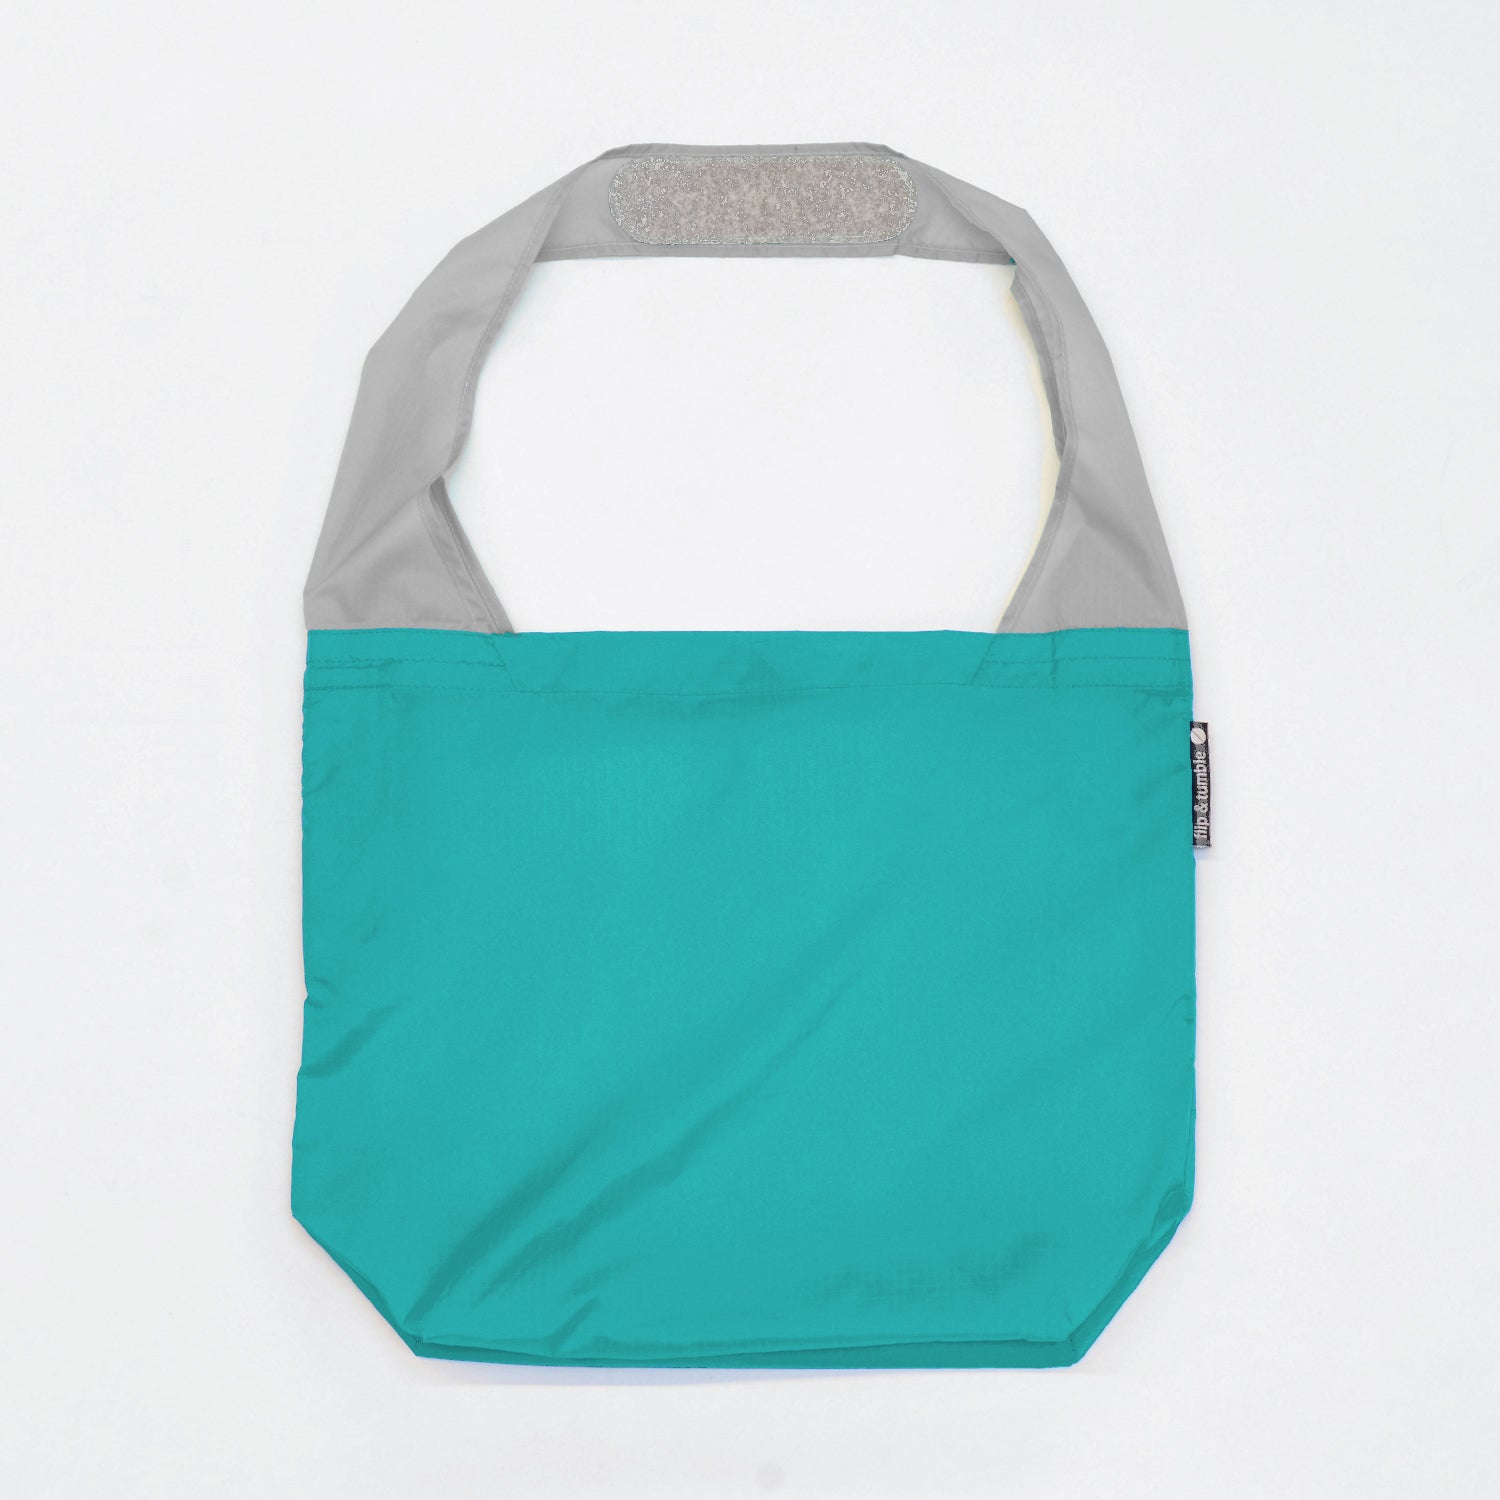 teal reusable grocery shopping bag